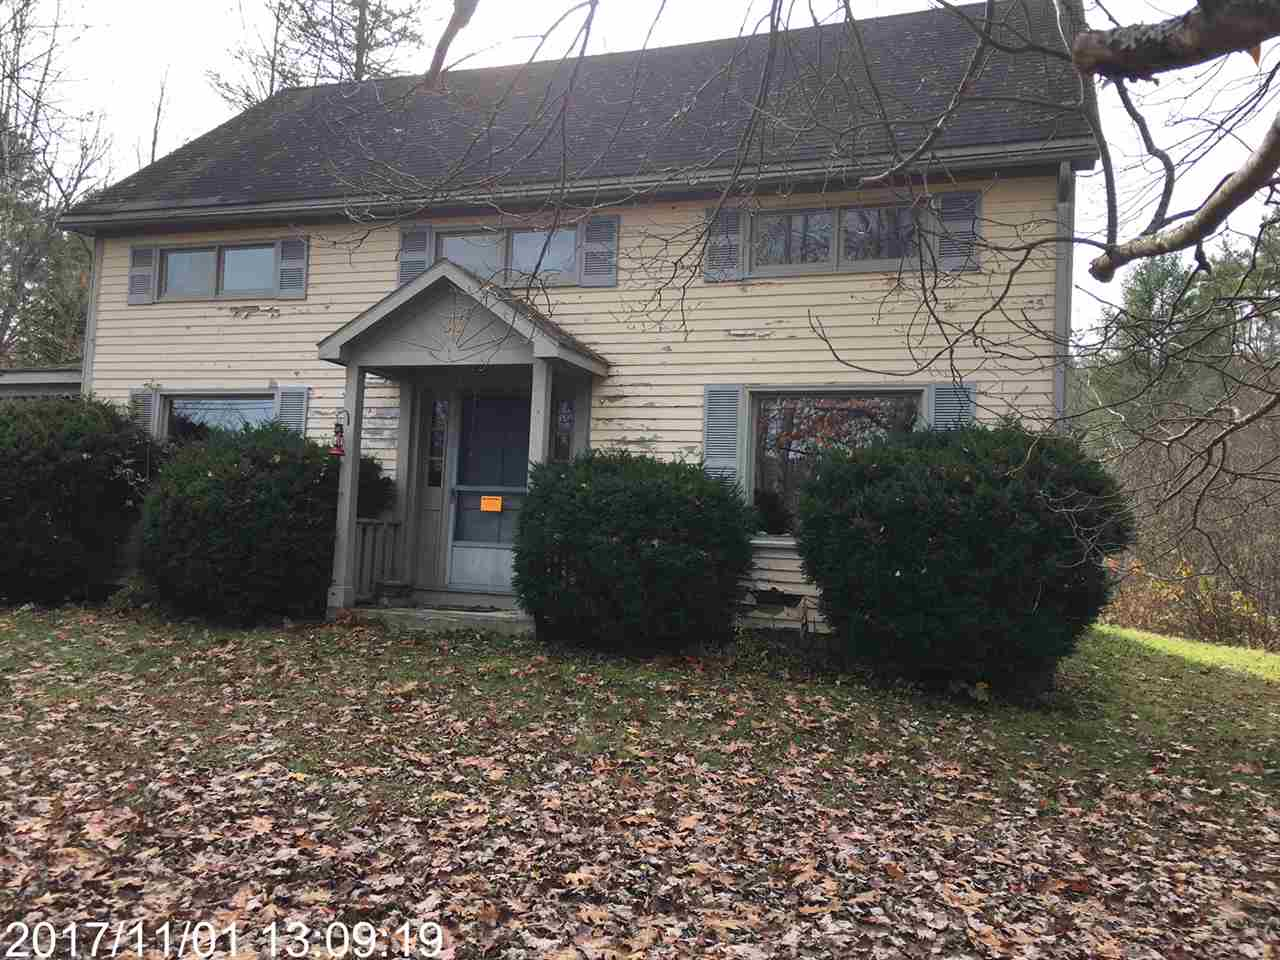 33 NH 4A Route, Wilmot, NH 03287